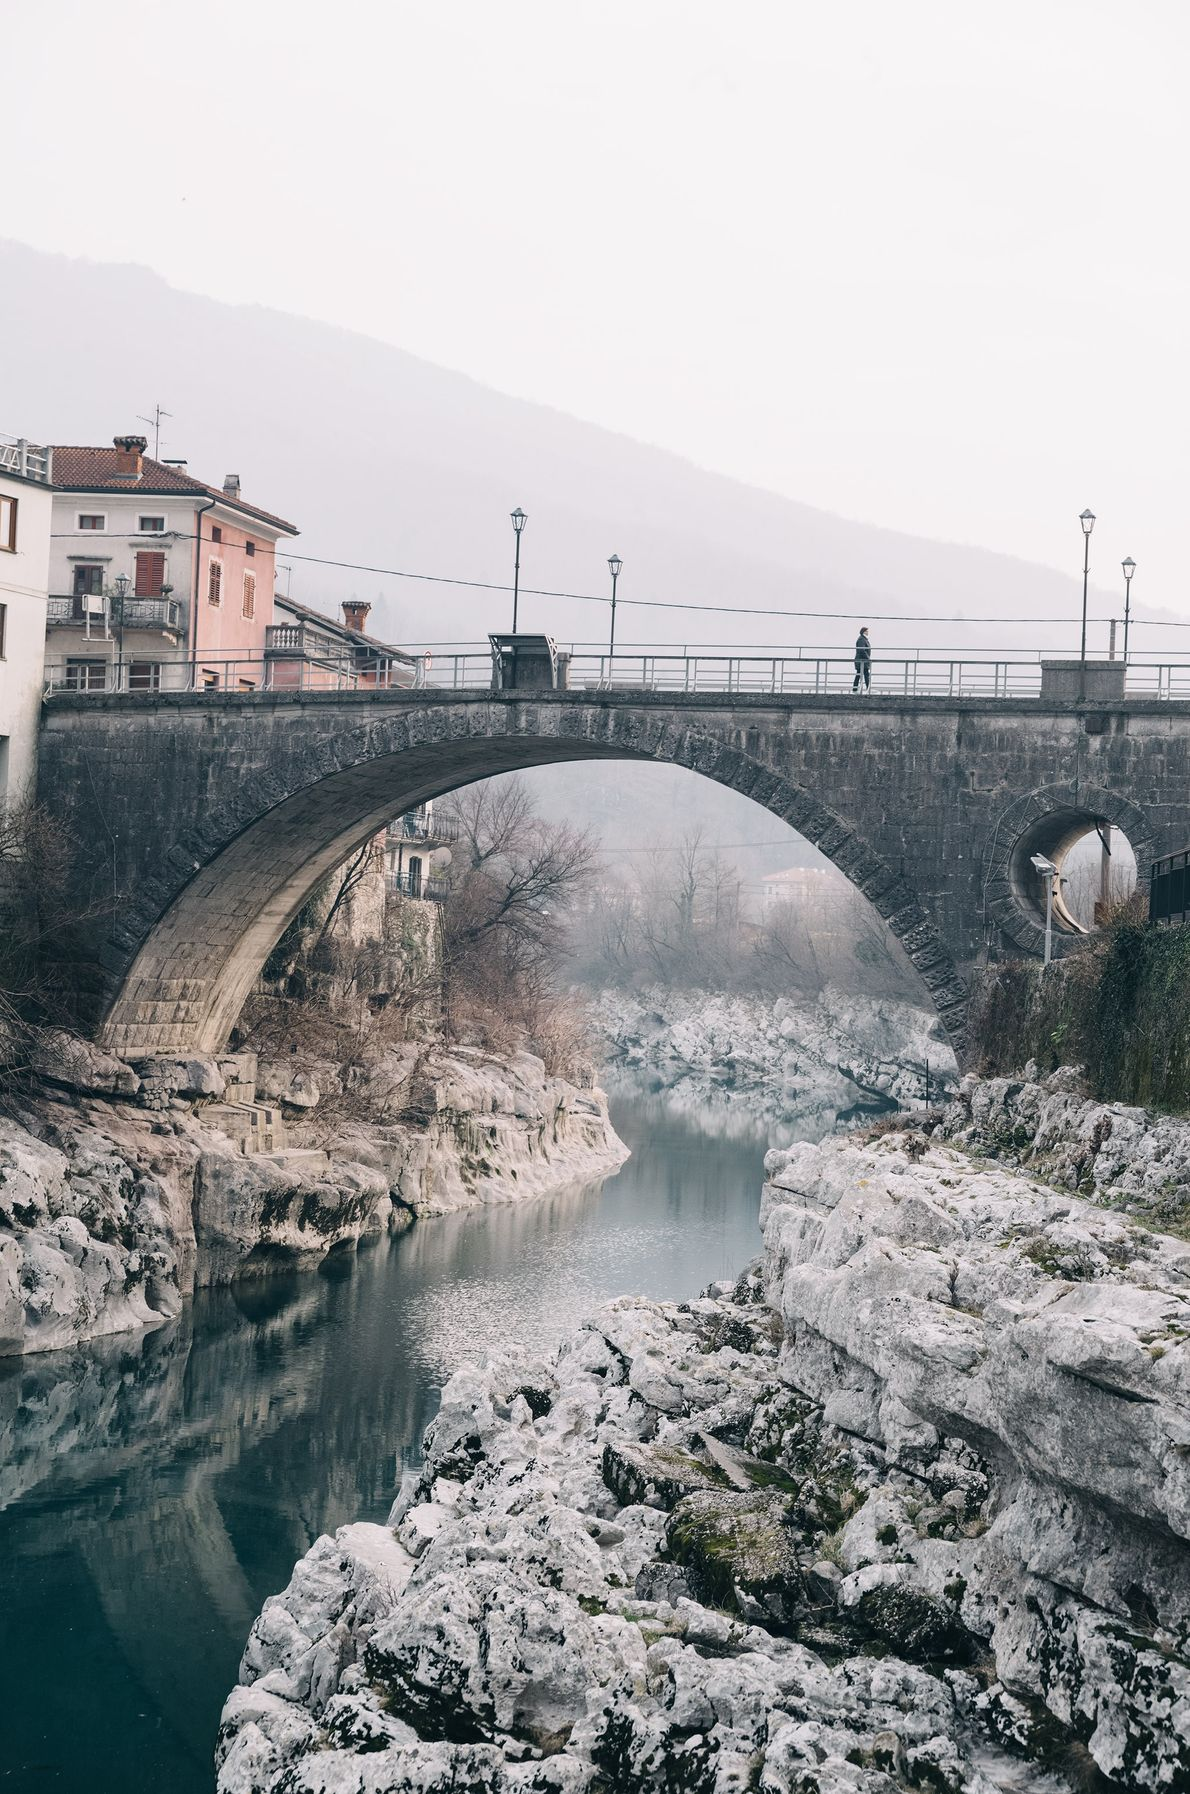 A decades-old stone bridge connects visitors to the municipality of Kanal ob Soči, which celebrates Shrovetide ...